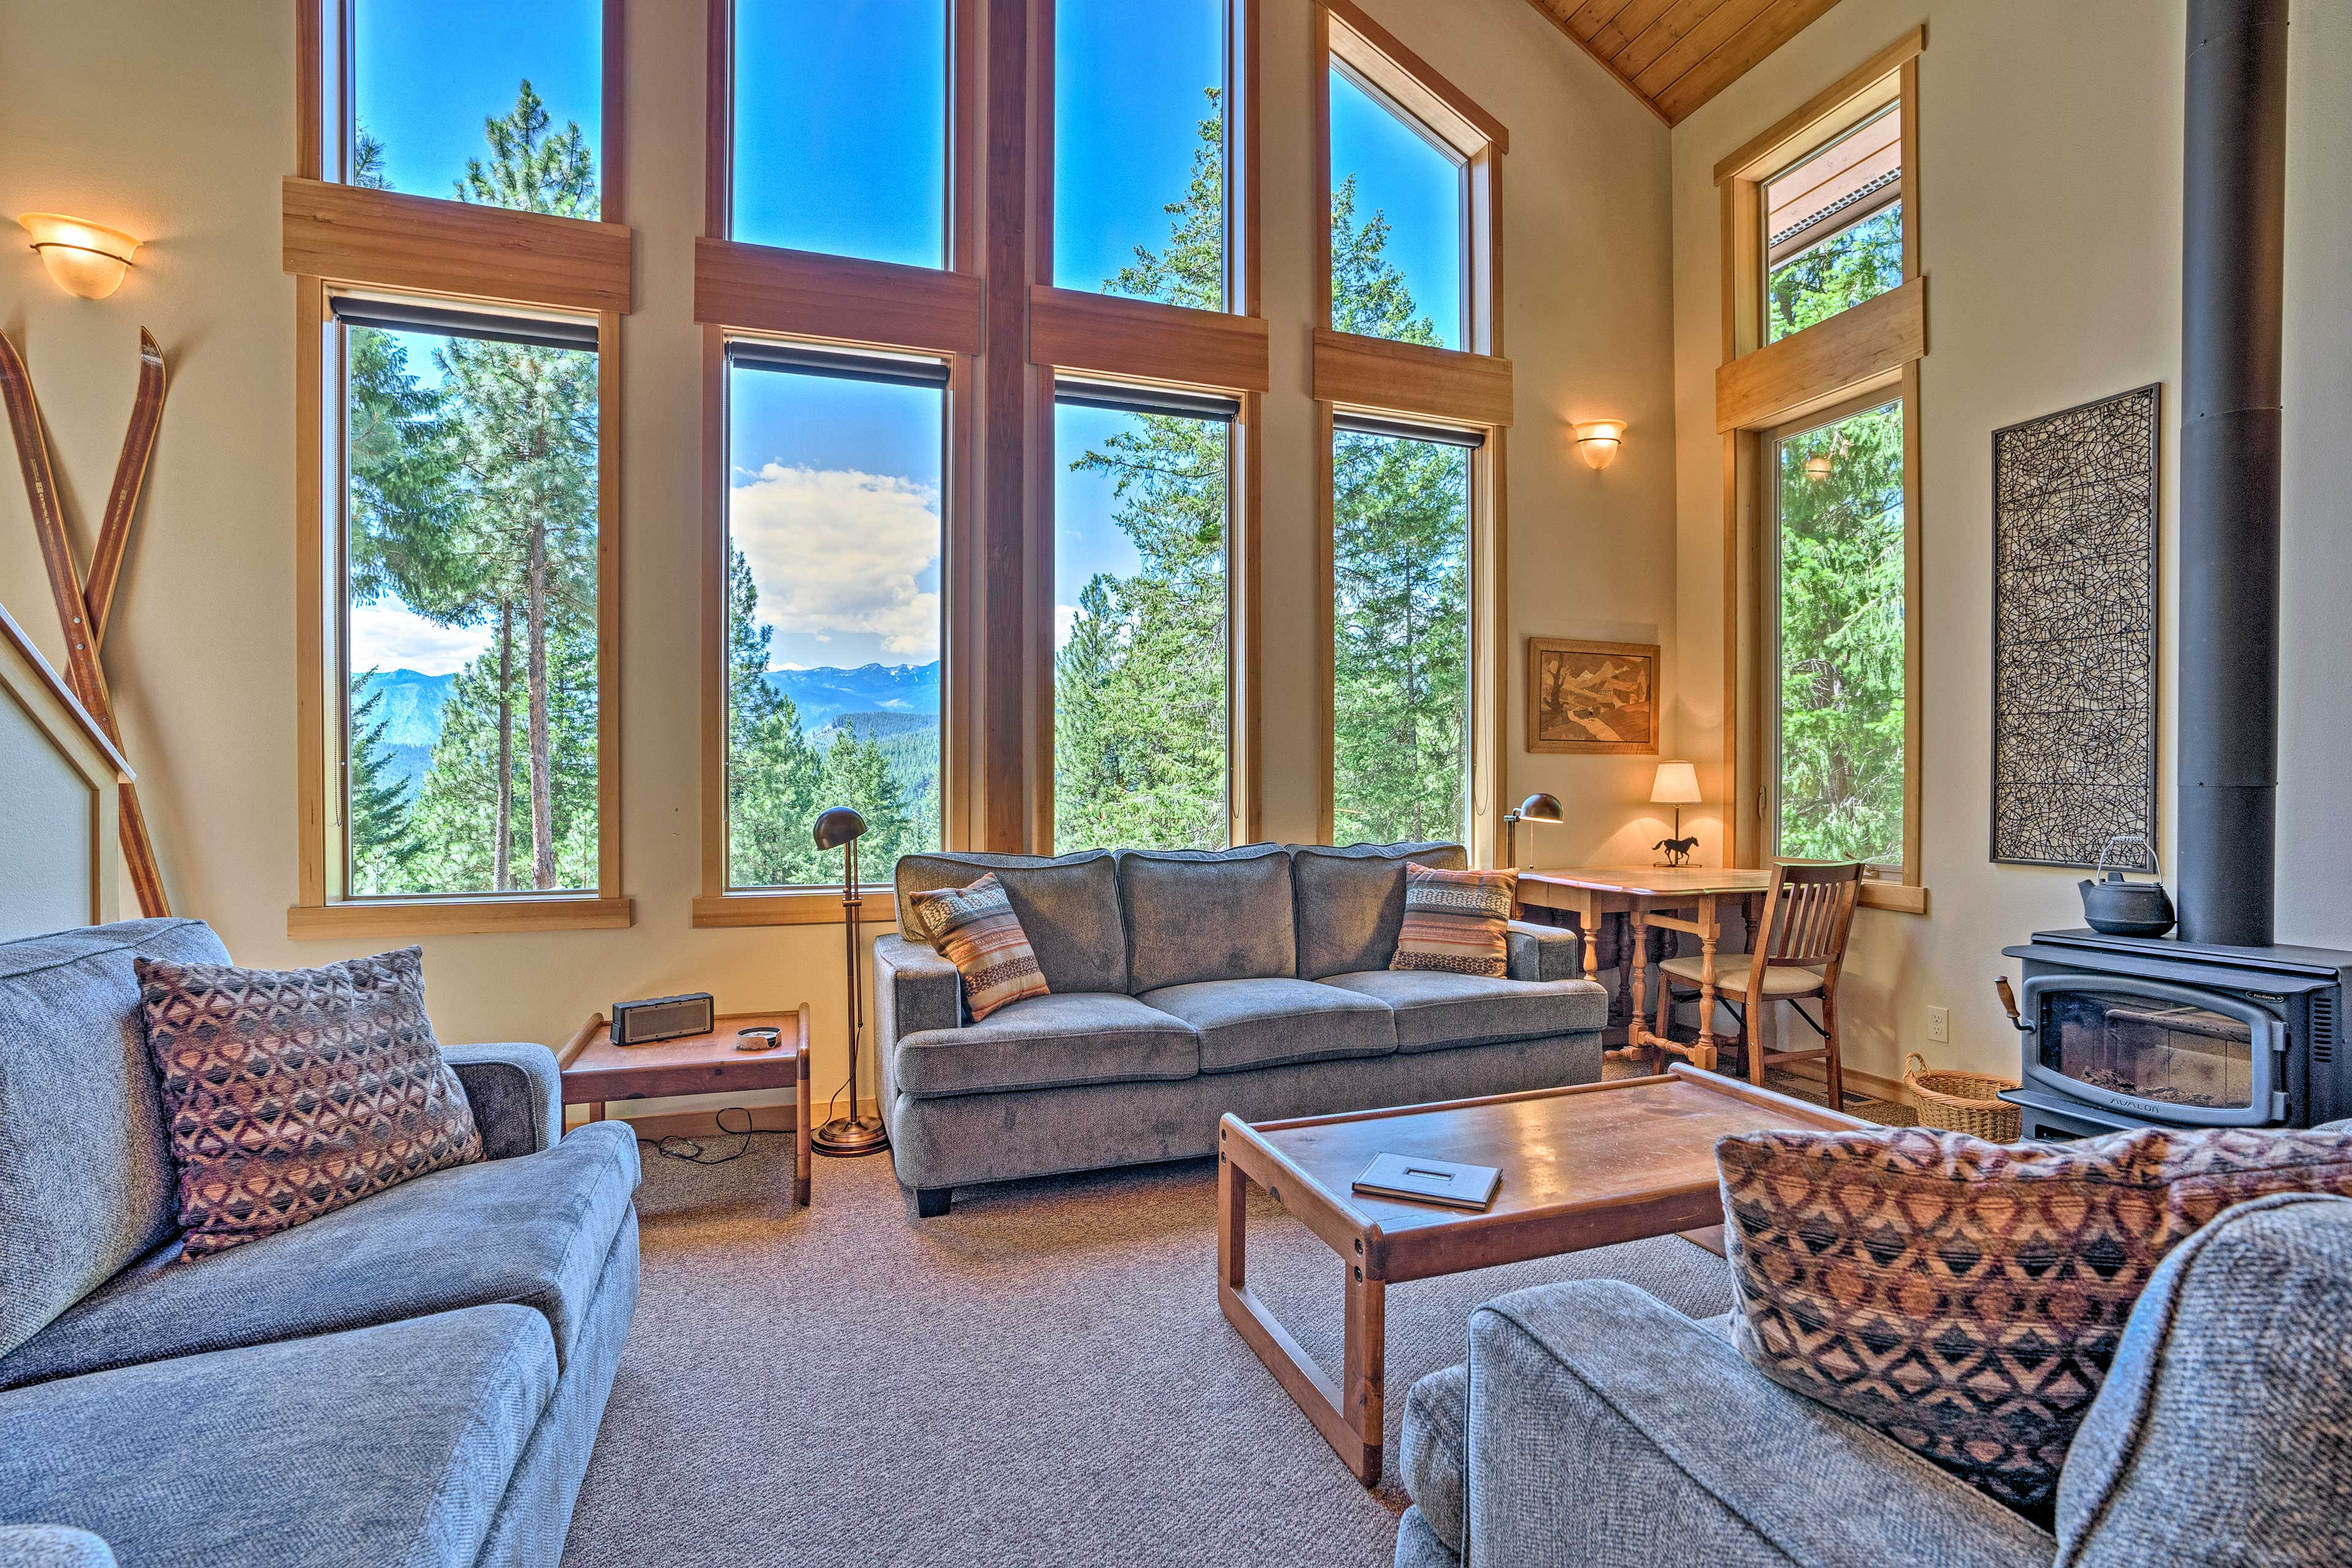 Get ready for a scenic, secluded getaway in the forested hills of Leavenworth.